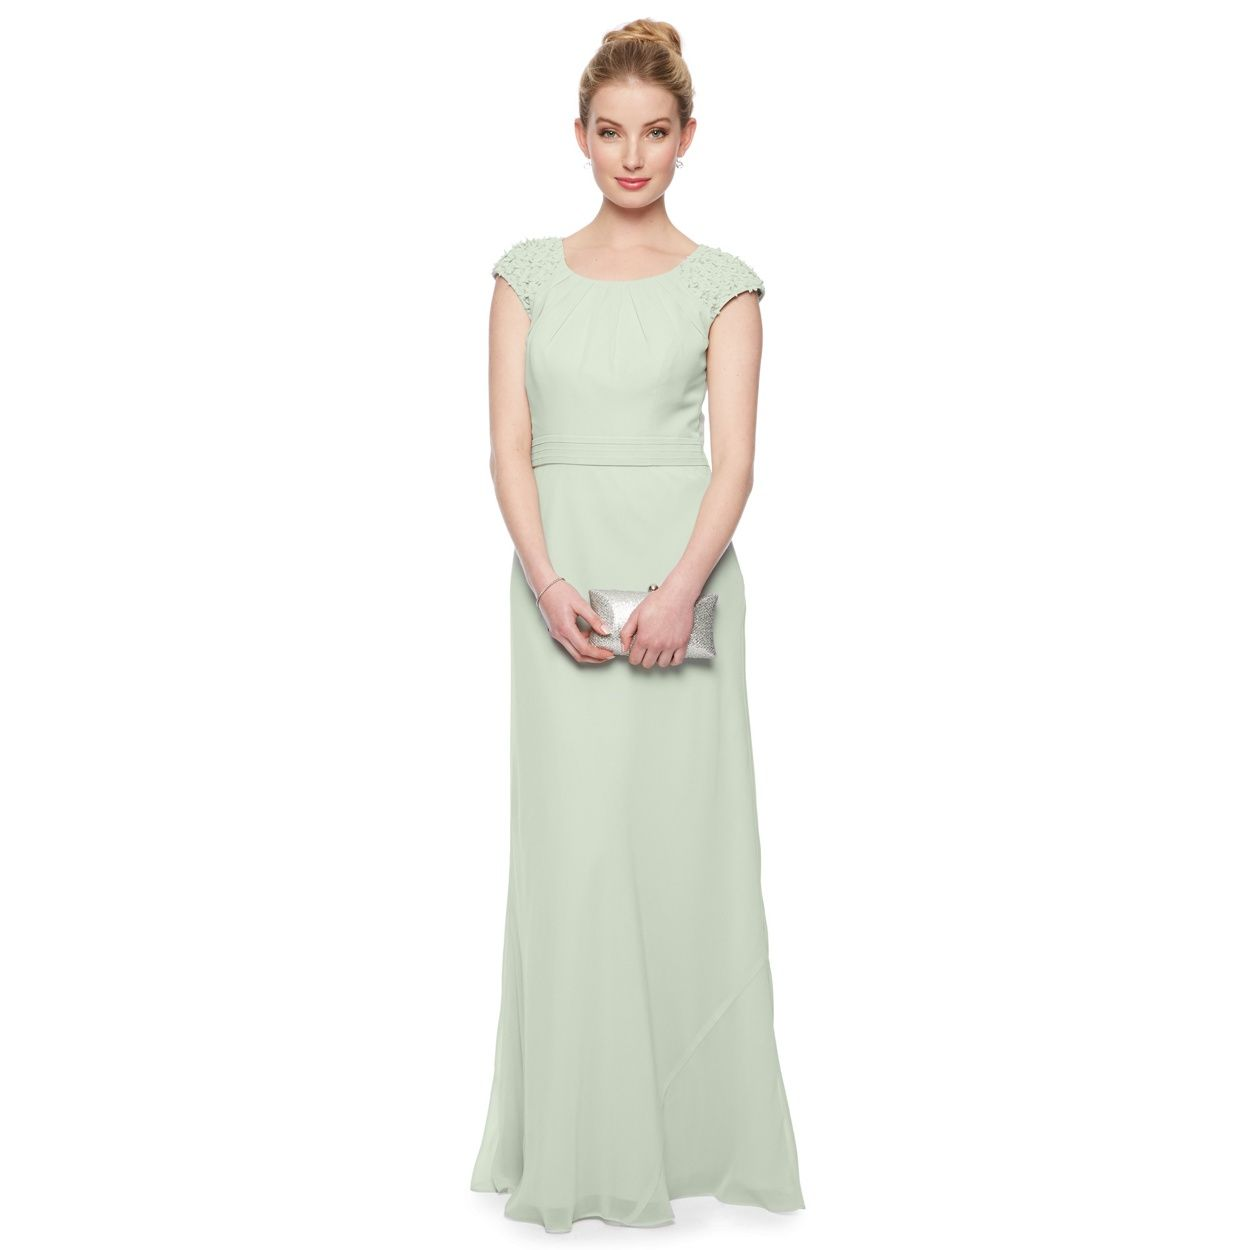 Debut mint green floral shoulder maxi dress at debenhams